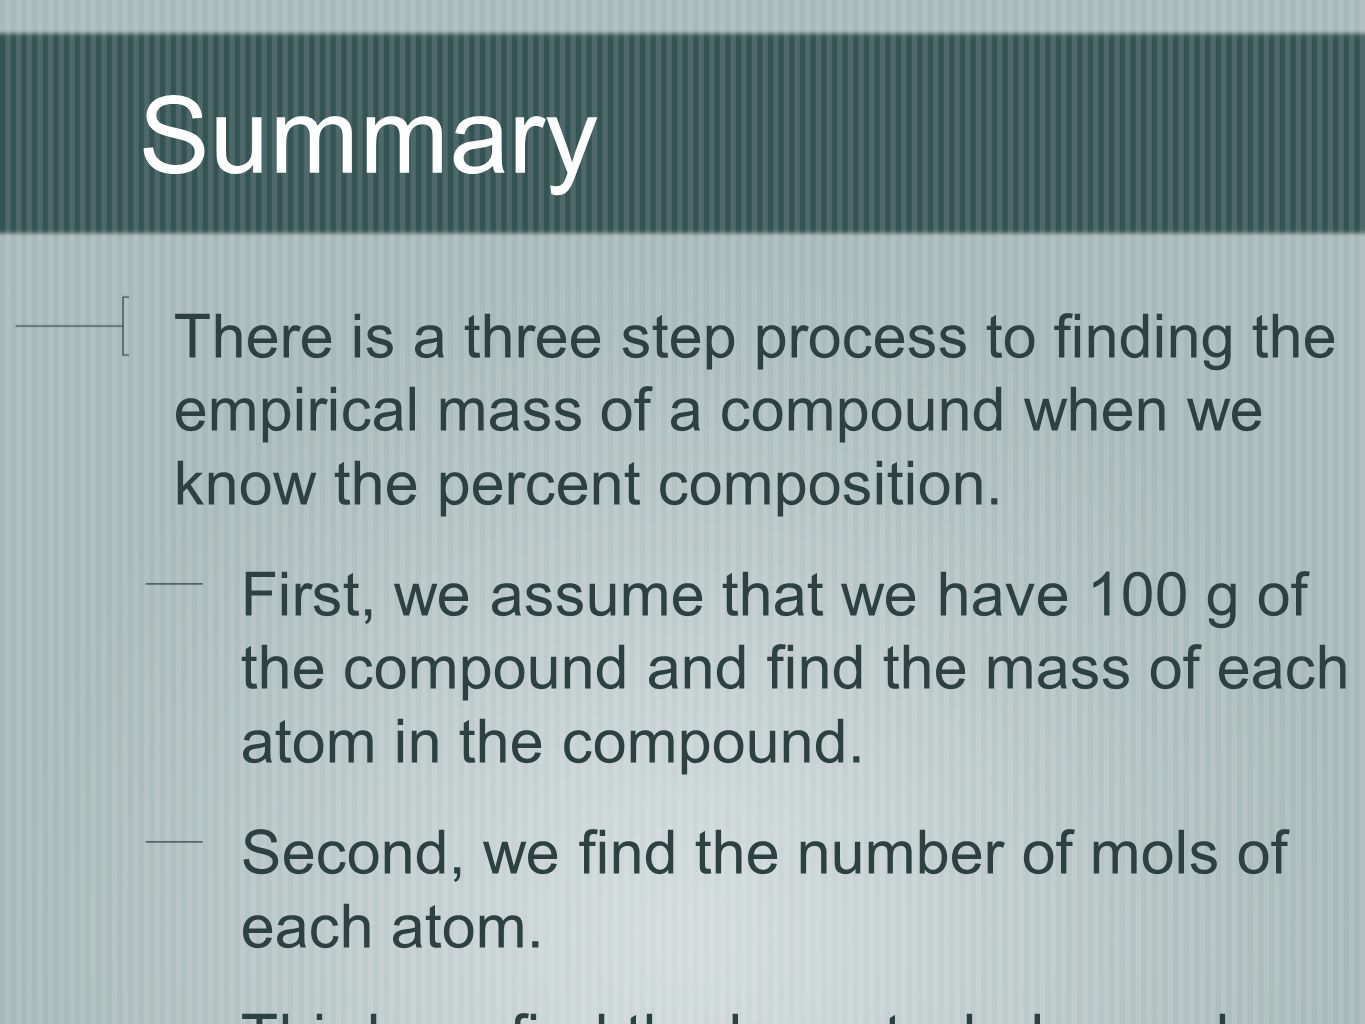 Summary There is a three step process to finding the empirical mass of a compound when we know the percent composition.